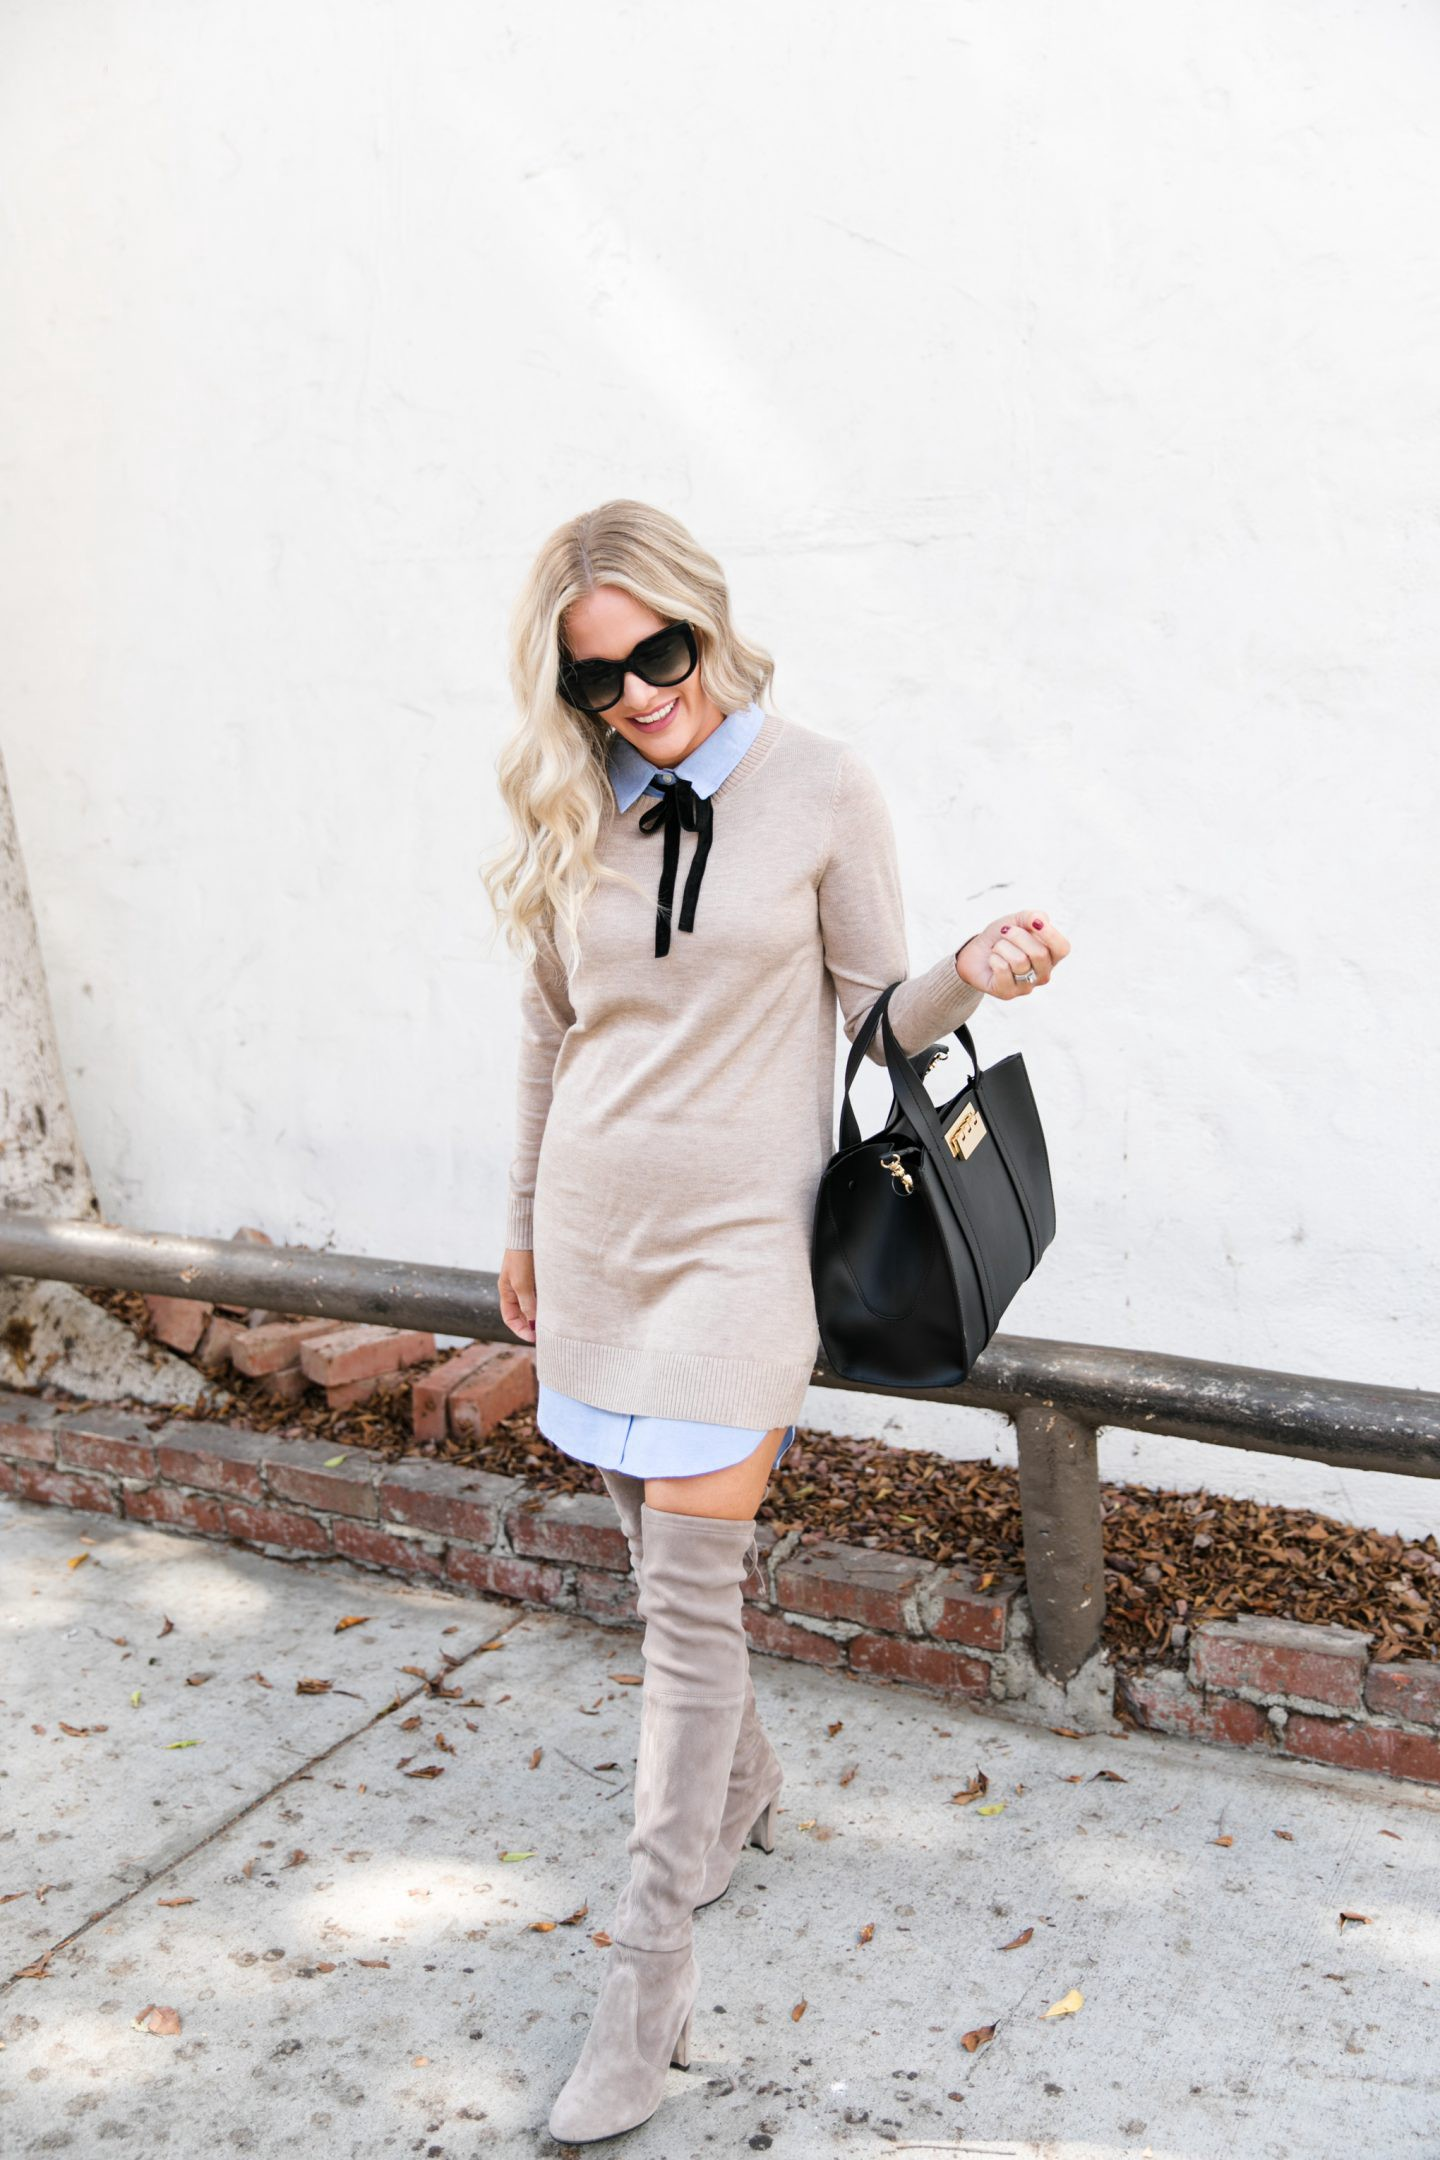 Suede Over The Knee Boots styled for Fall by top Orange County fashion blog, Dress Me Blonde